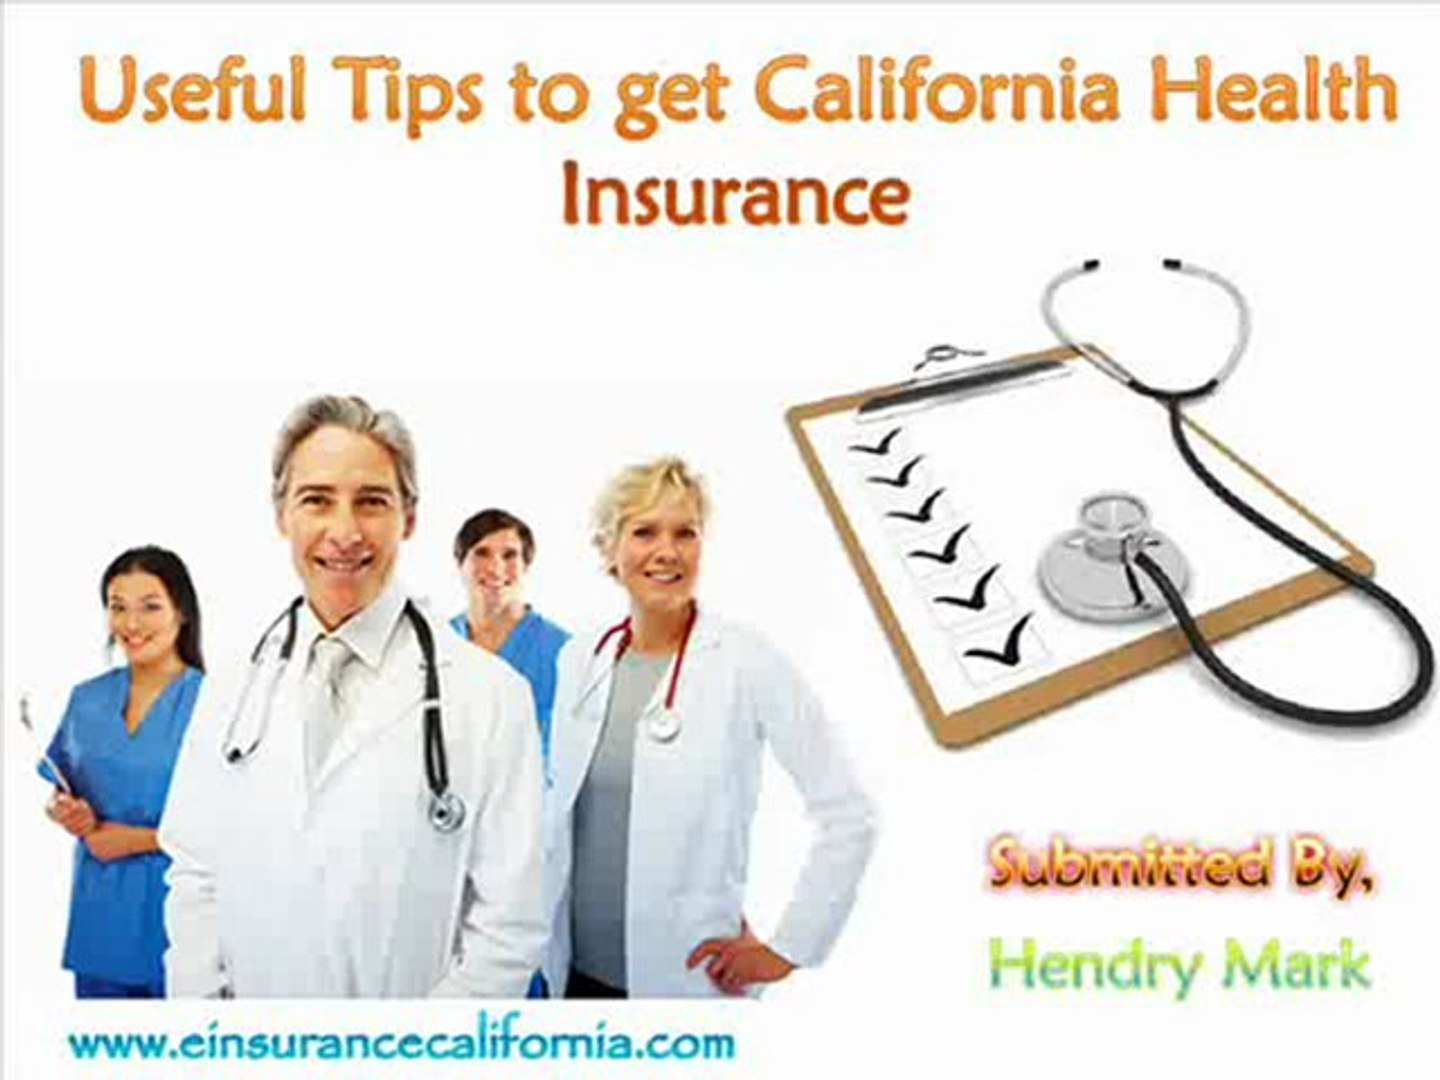 Useful Tips to get California Health Insurance